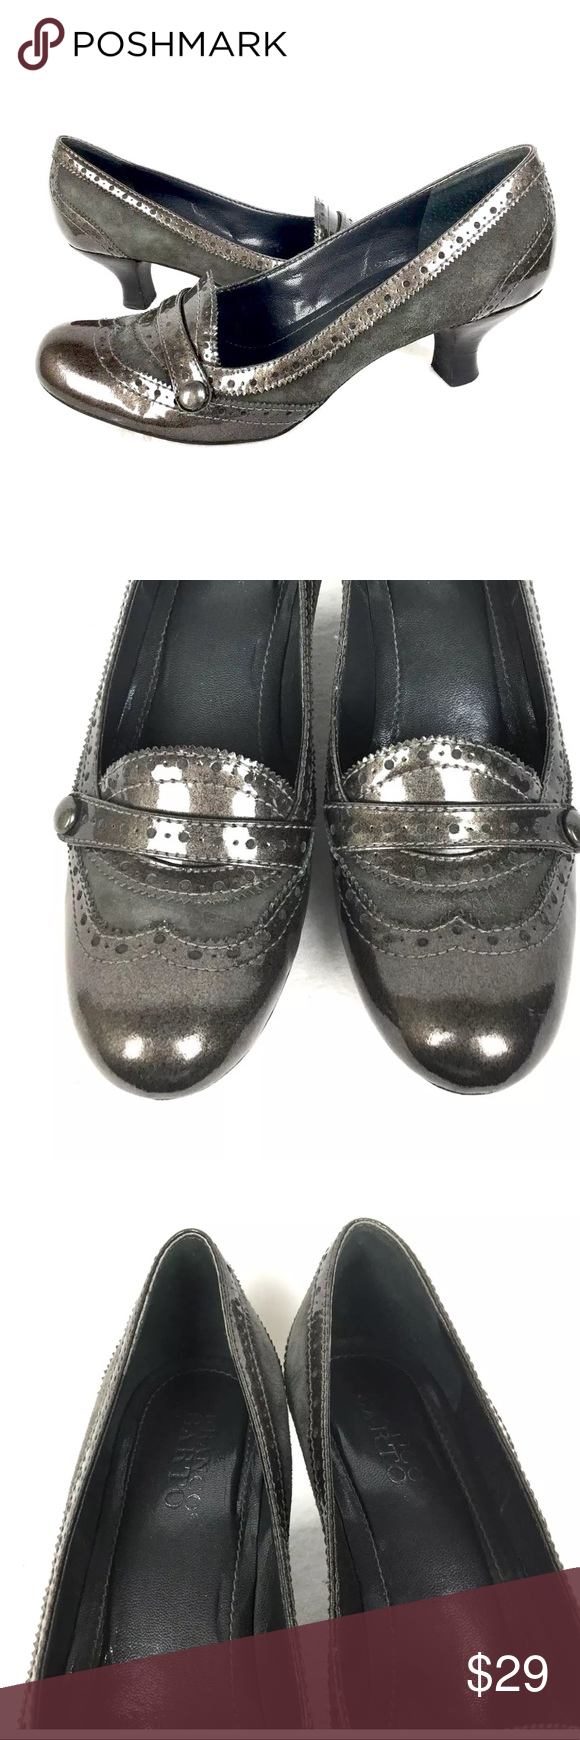 Franco Sarto Gray Patent Leather Heels 8.5 •  Brand: Franco Sarto   •  Color: Gray  •  Size: 8.5 M  •  Material: 100% Genuine Patent Leather Upper  •  Condition: Very Good Condition! (See Photos) Only Slight Marks noted at Heels/toes of shoes Franco Sarto Shoes Heels